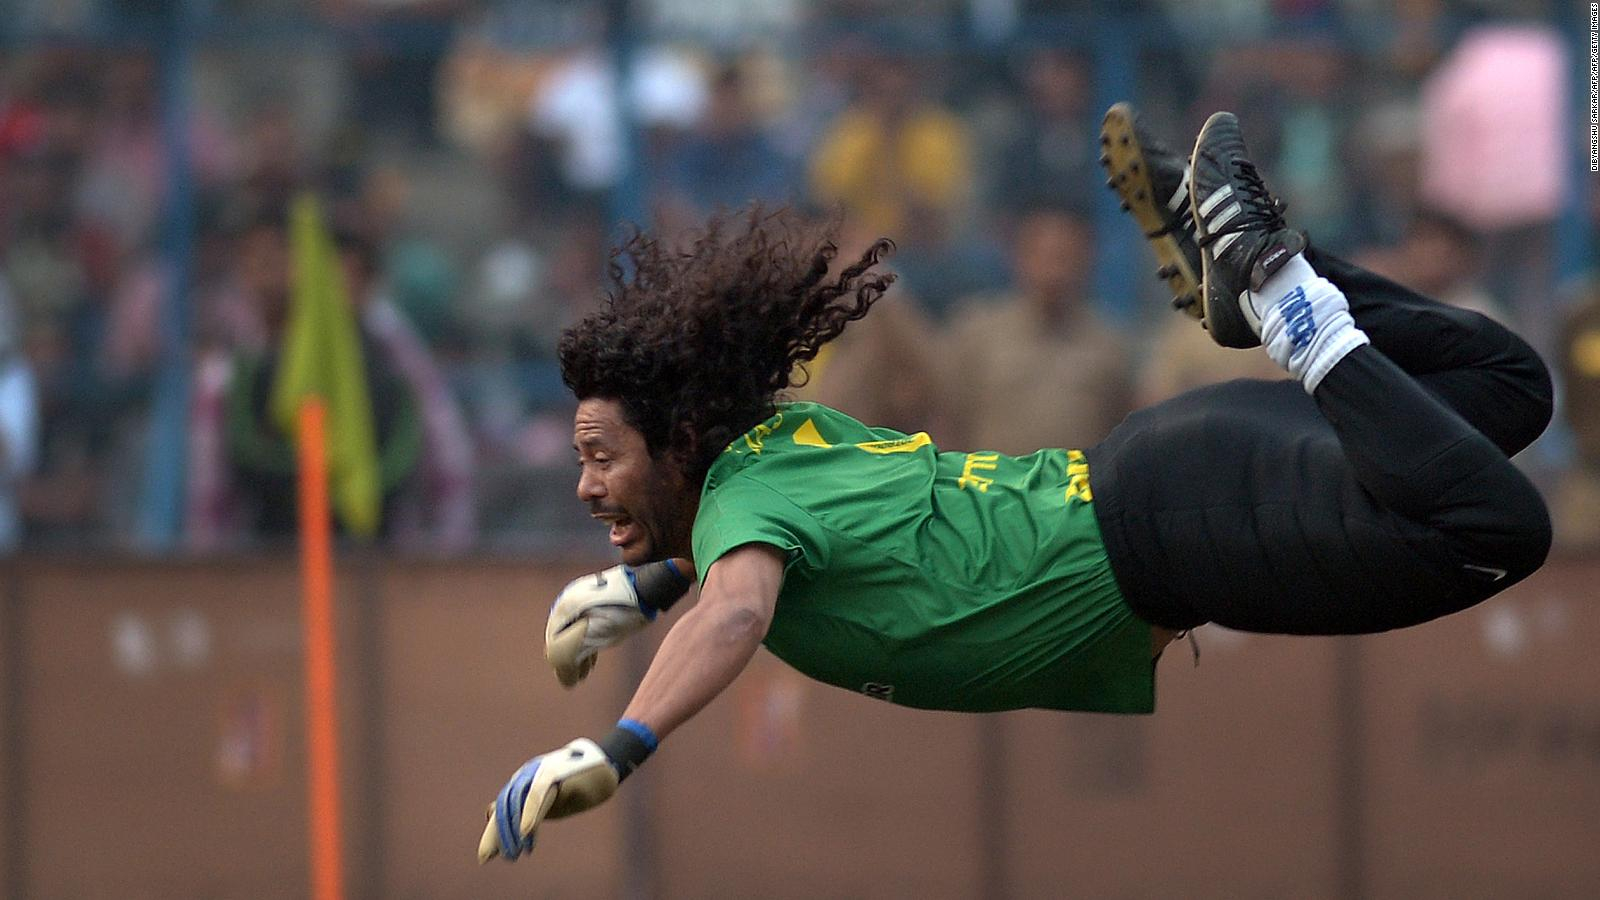 Higuita Escorpión